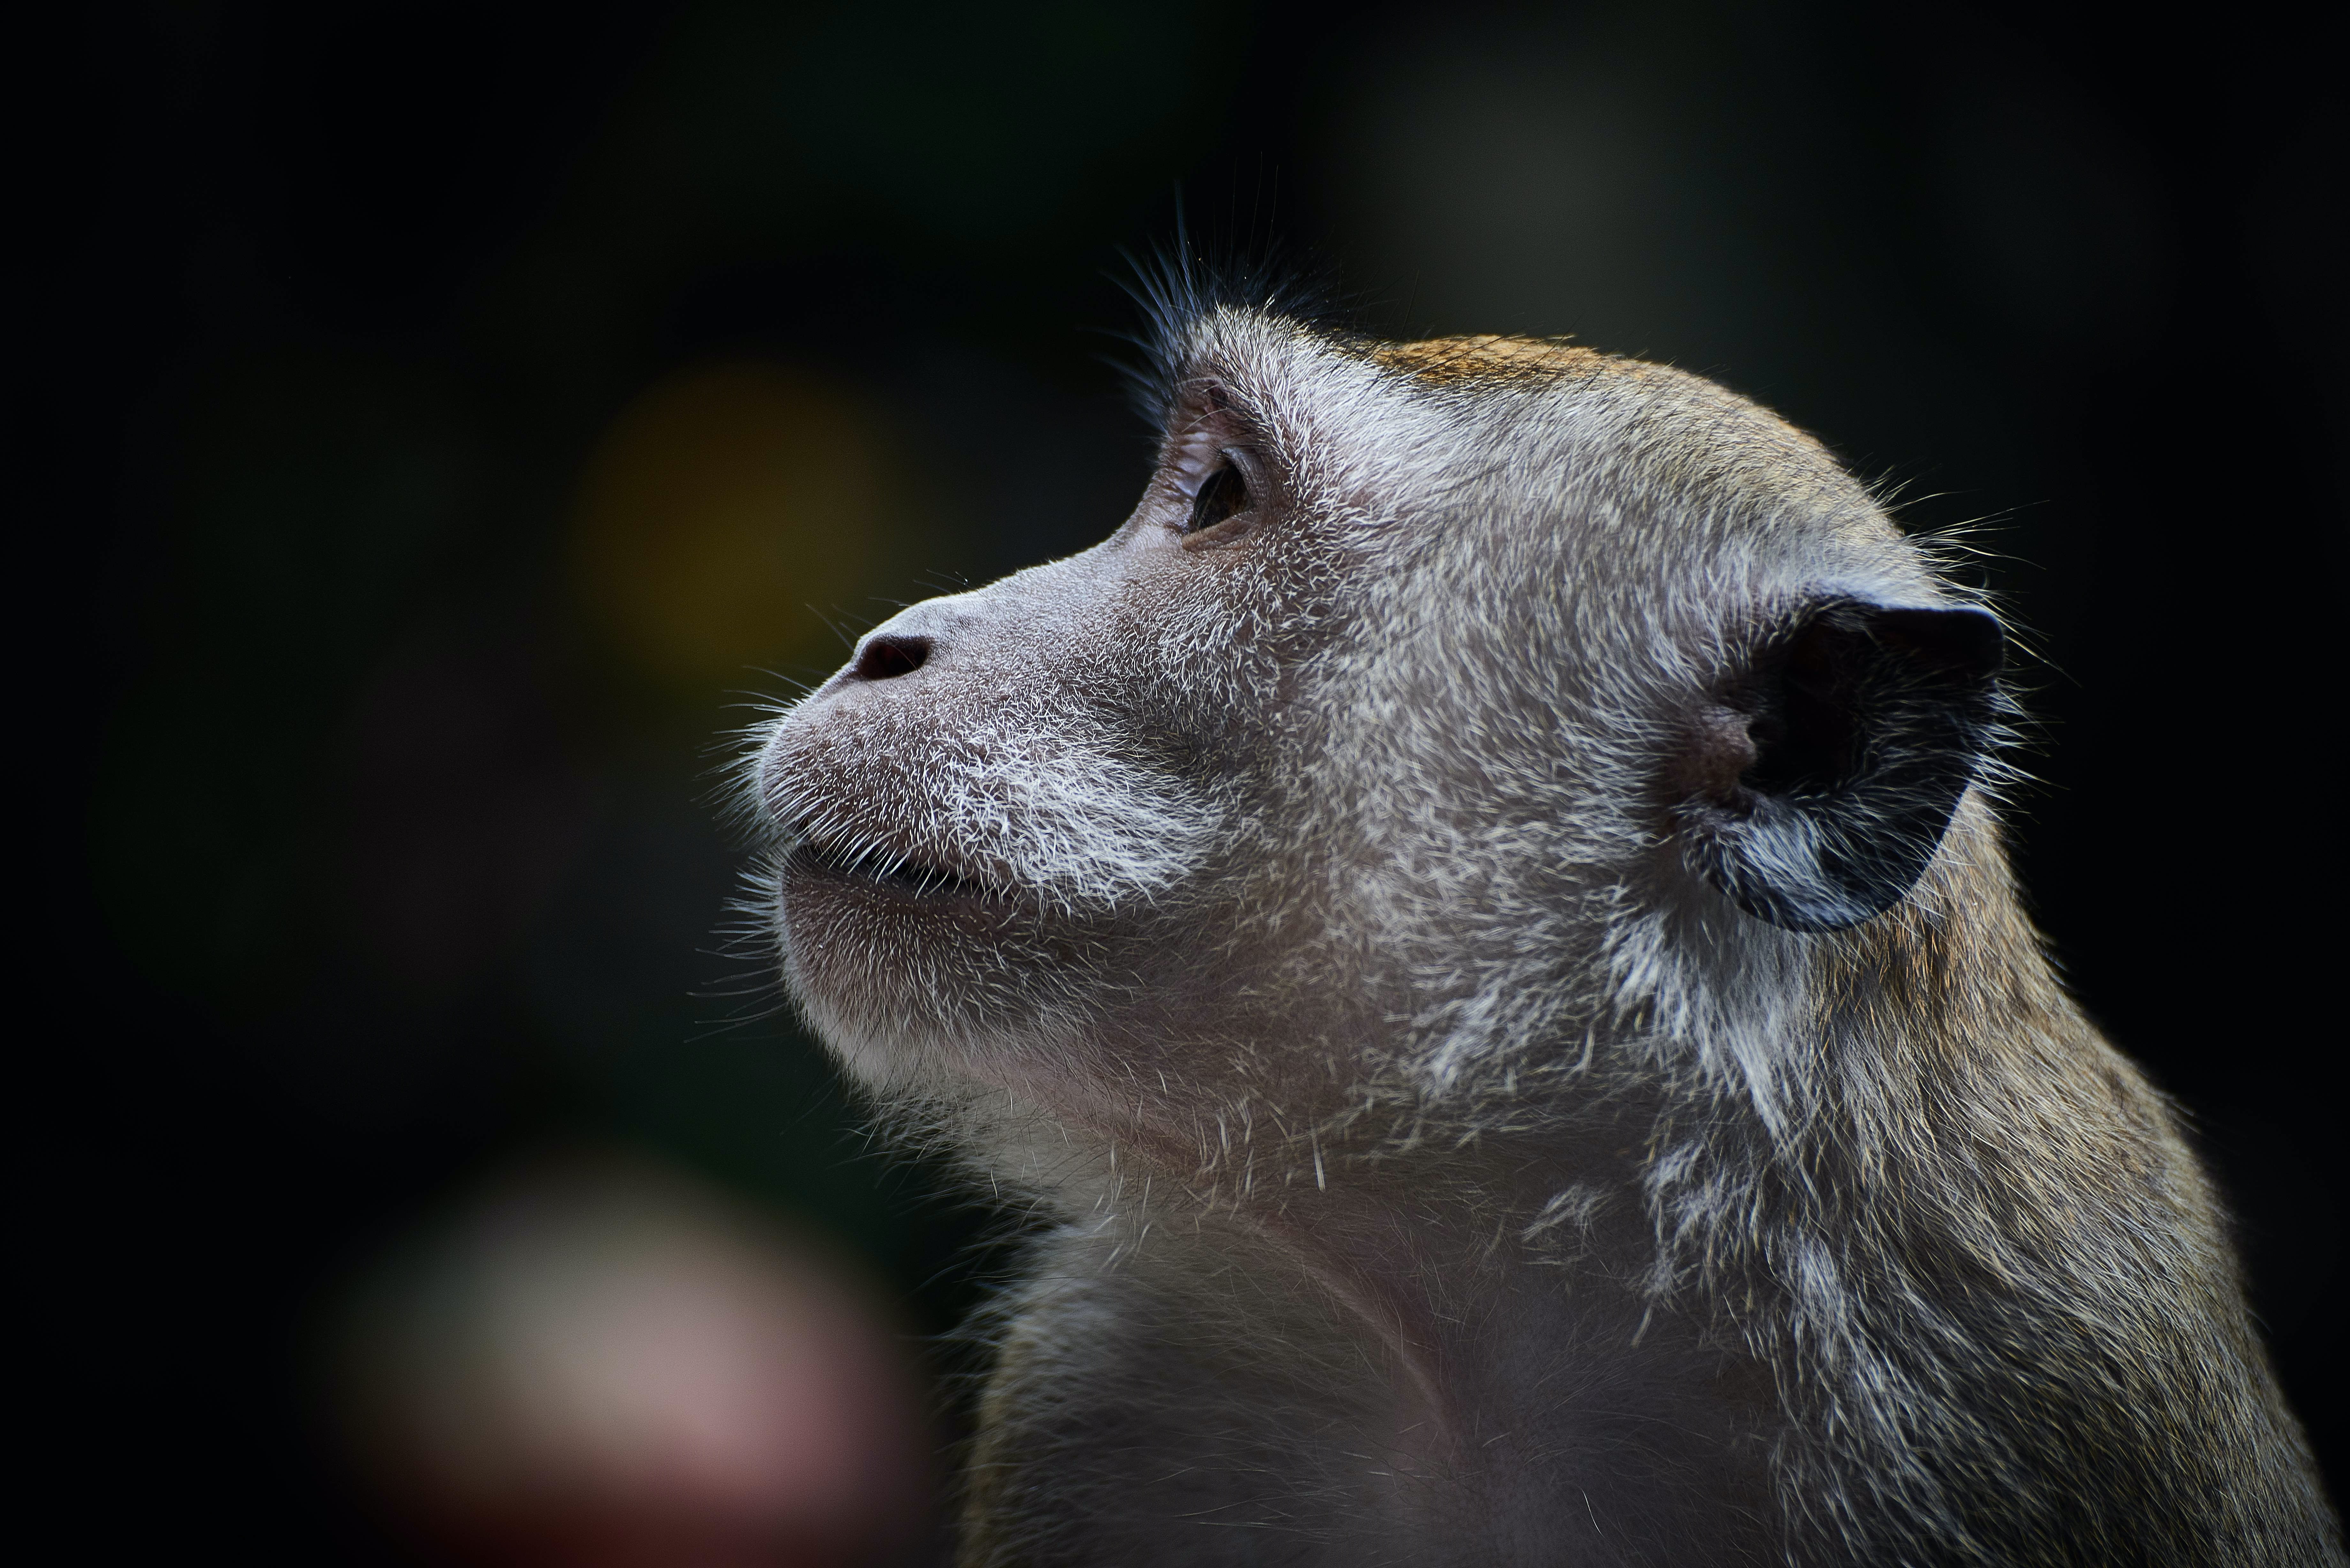 A macro shot of a monkey attentively looking to the side